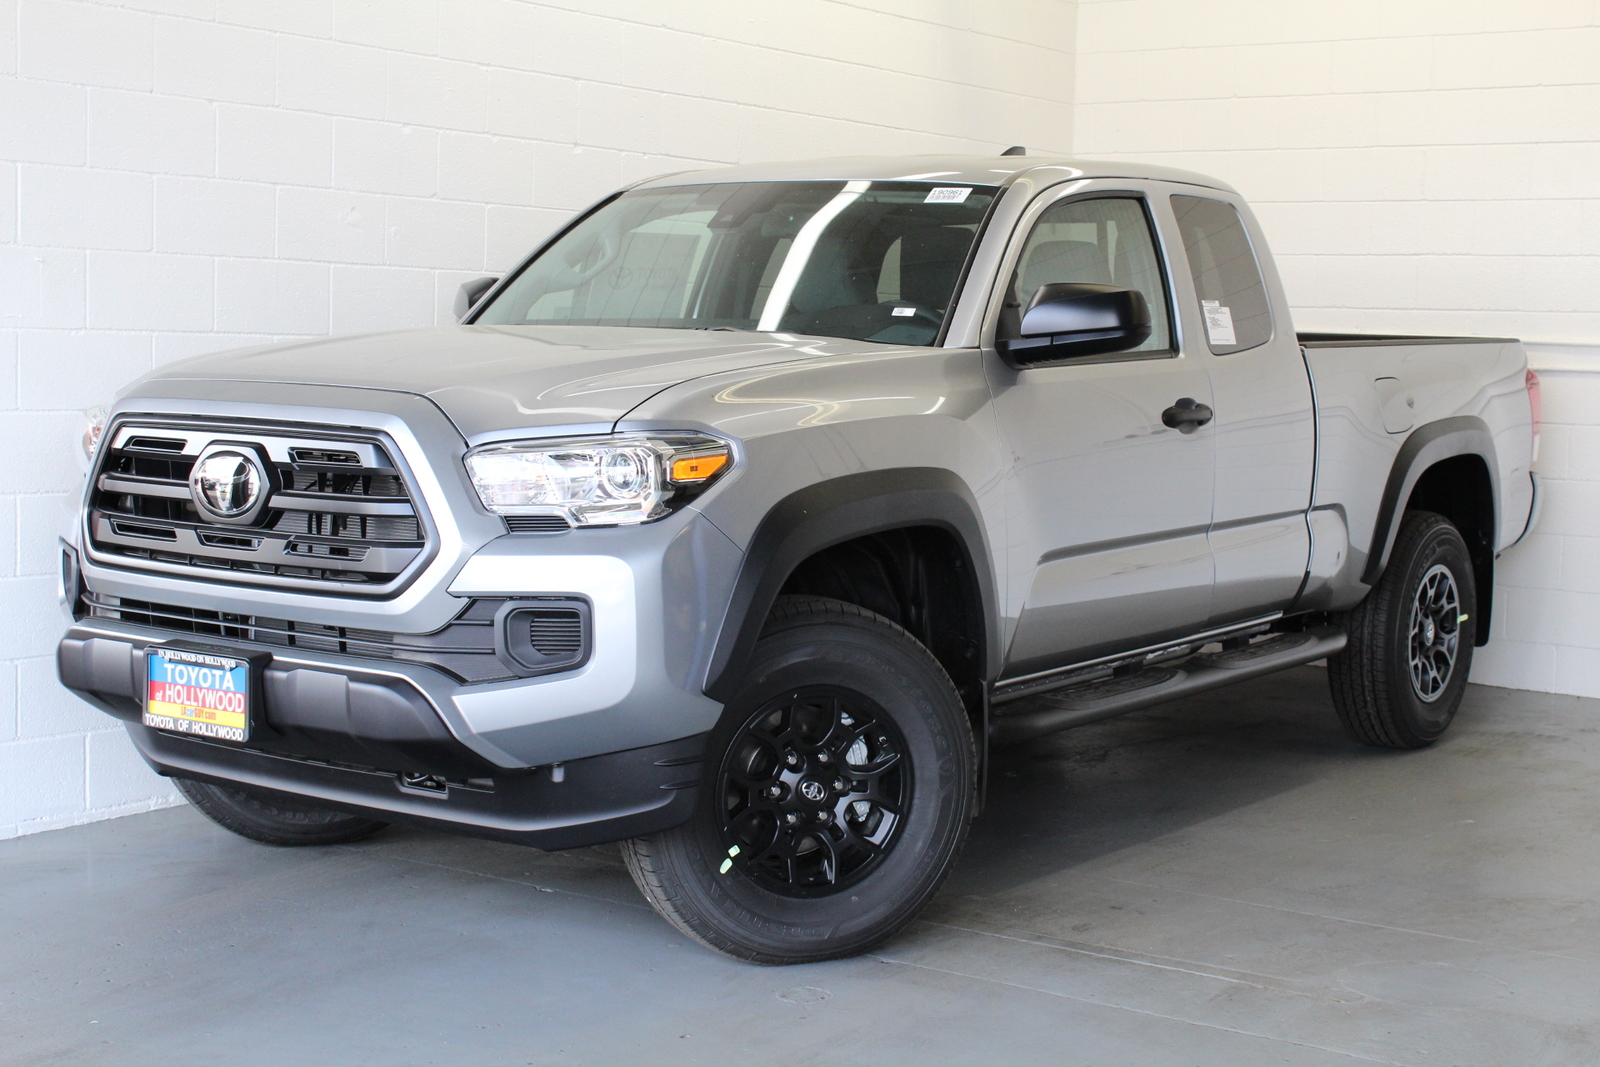 New 2019 Toyota Tacoma 2WD SR Access Cab 6' Bed I4 AT